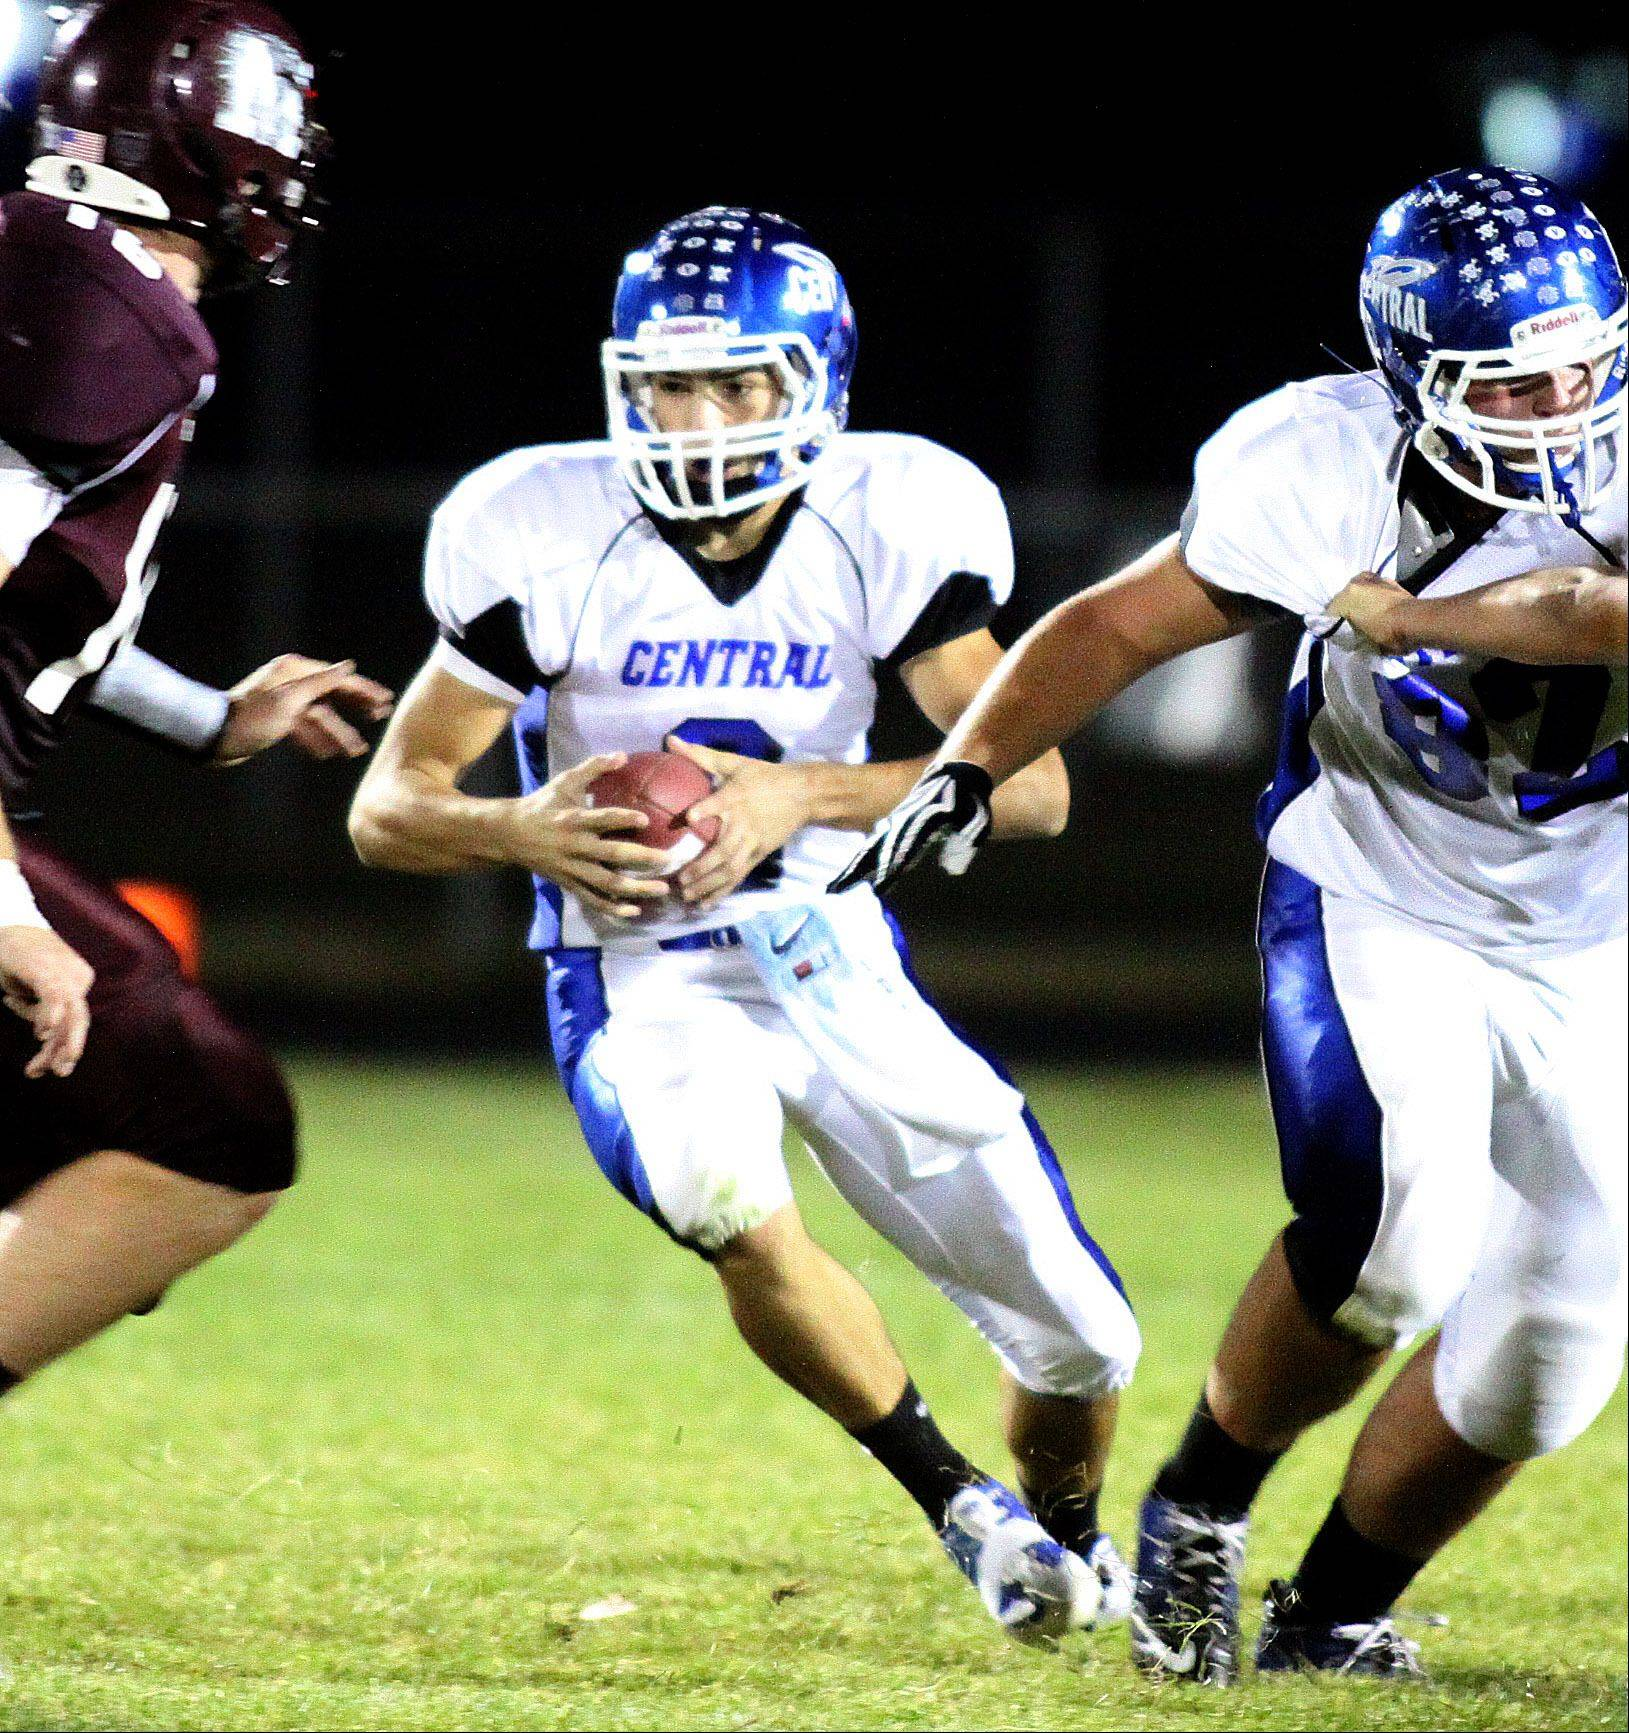 Burlington Central quarterback Tyler Majewski moves with the ball last Friday at Marengo. BC takes on Richmond-Burton in a key Big Northern East battle on Rocket Hill tonight.